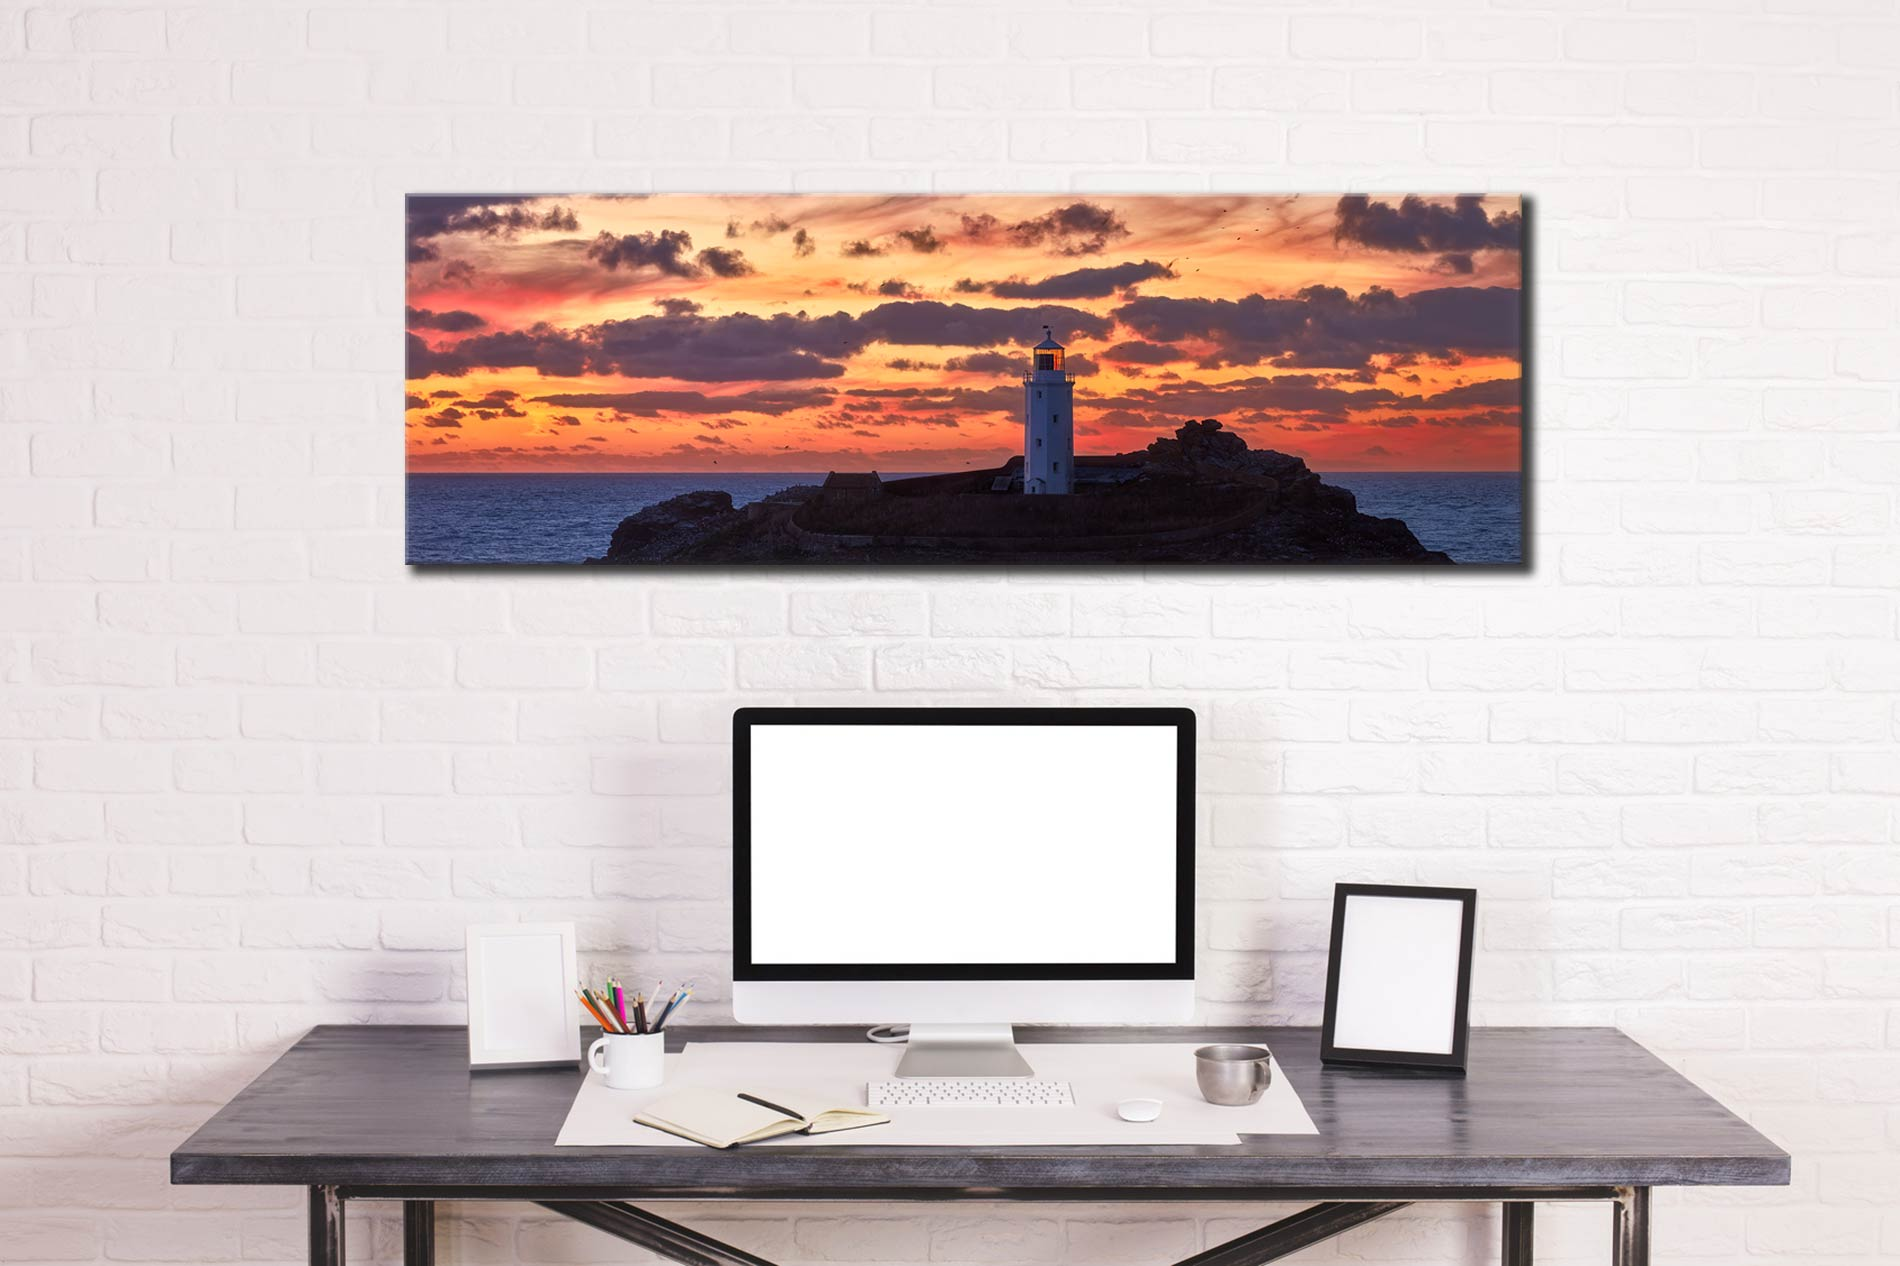 Painted Skies of Dusk at Godrevy - Canvas Print on wall